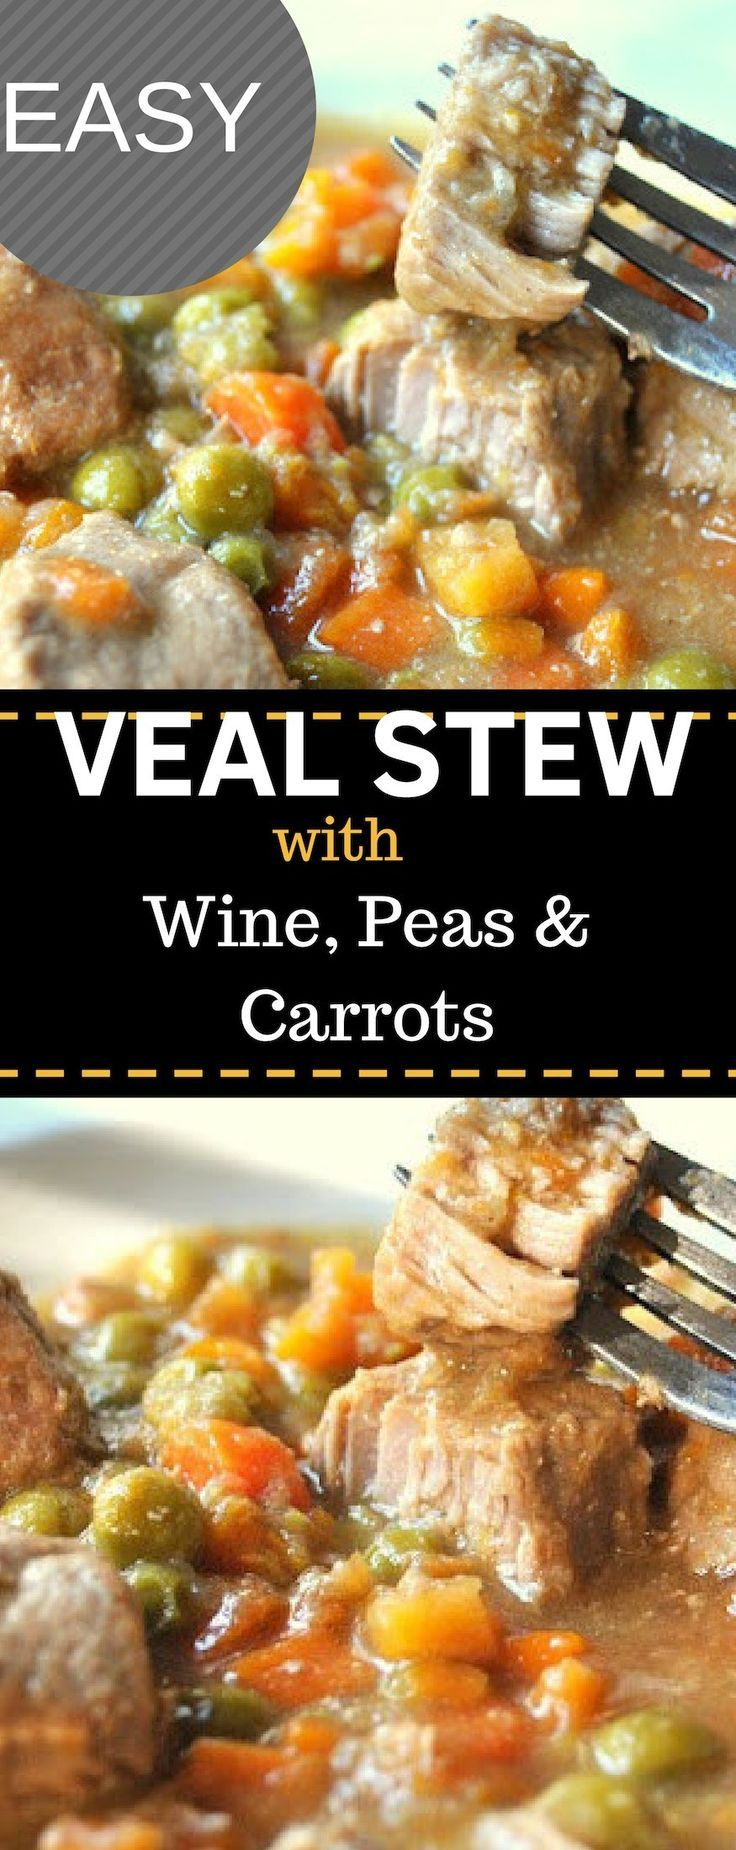 Veal Recipes Easy In 2020 Veal Recipes Easy Meat Recipes Veal Stew